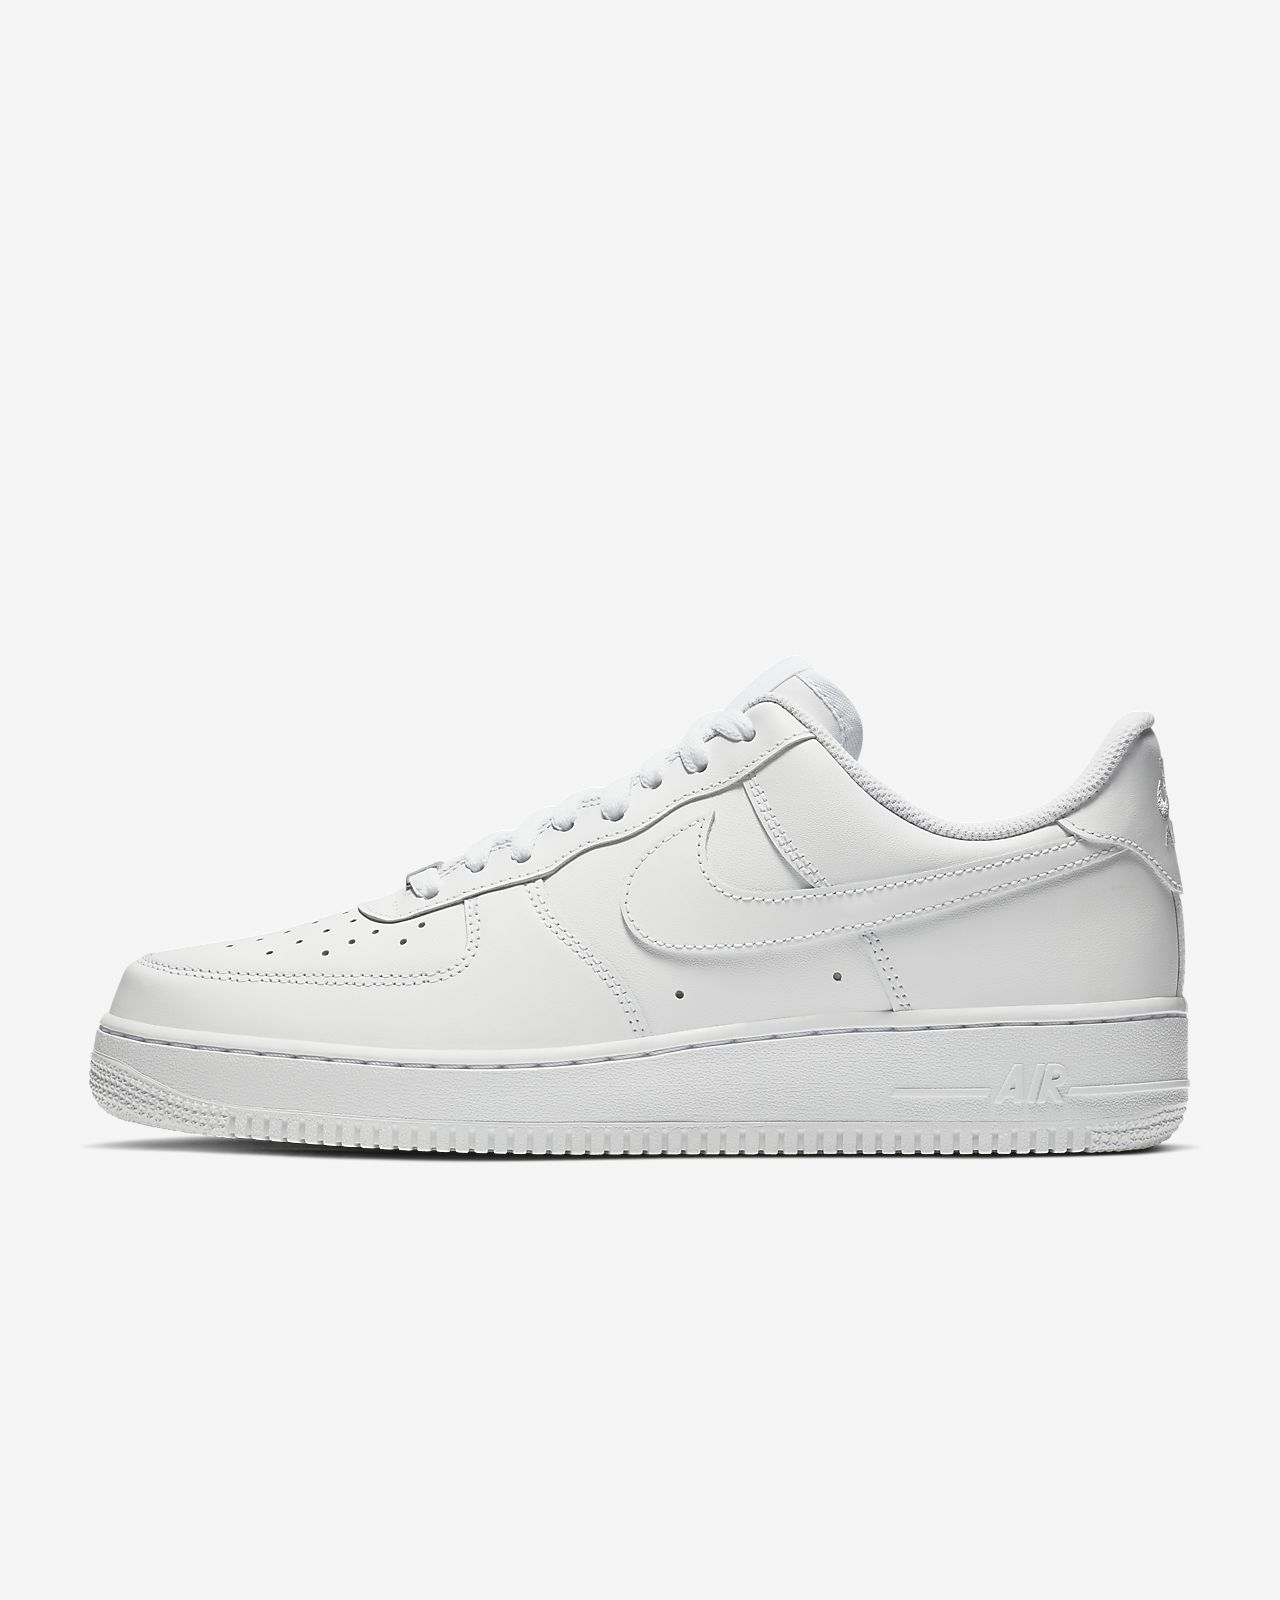 new product f7130 e707d Low Resolution Nike Air Force 1  07 Shoe Nike Air Force 1  07 Shoe